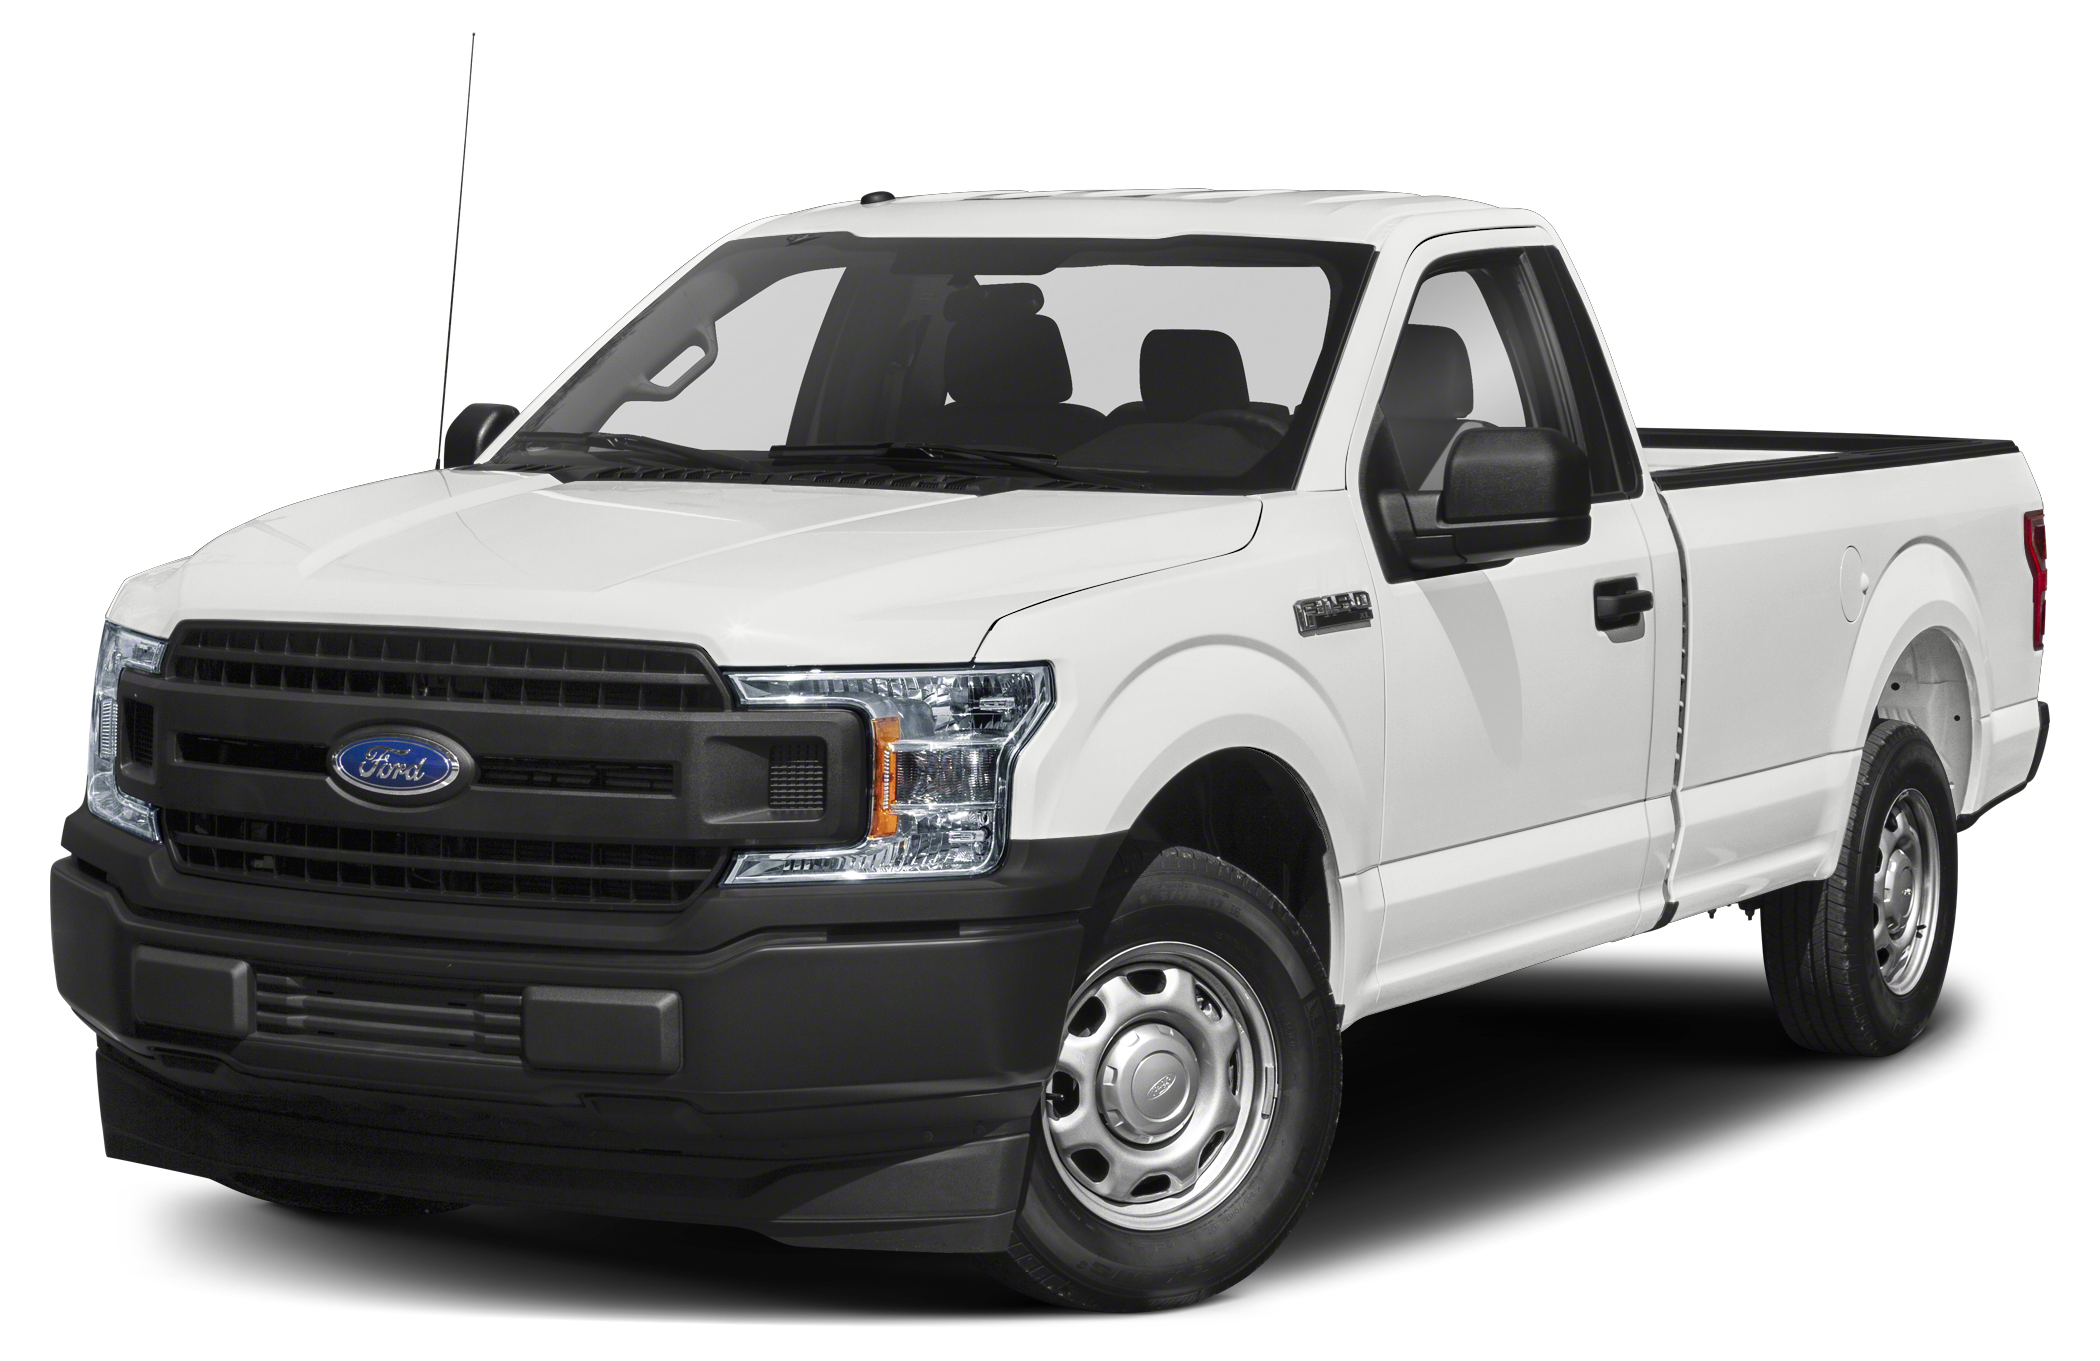 compare ford f 150 to ram 1500. Black Bedroom Furniture Sets. Home Design Ideas